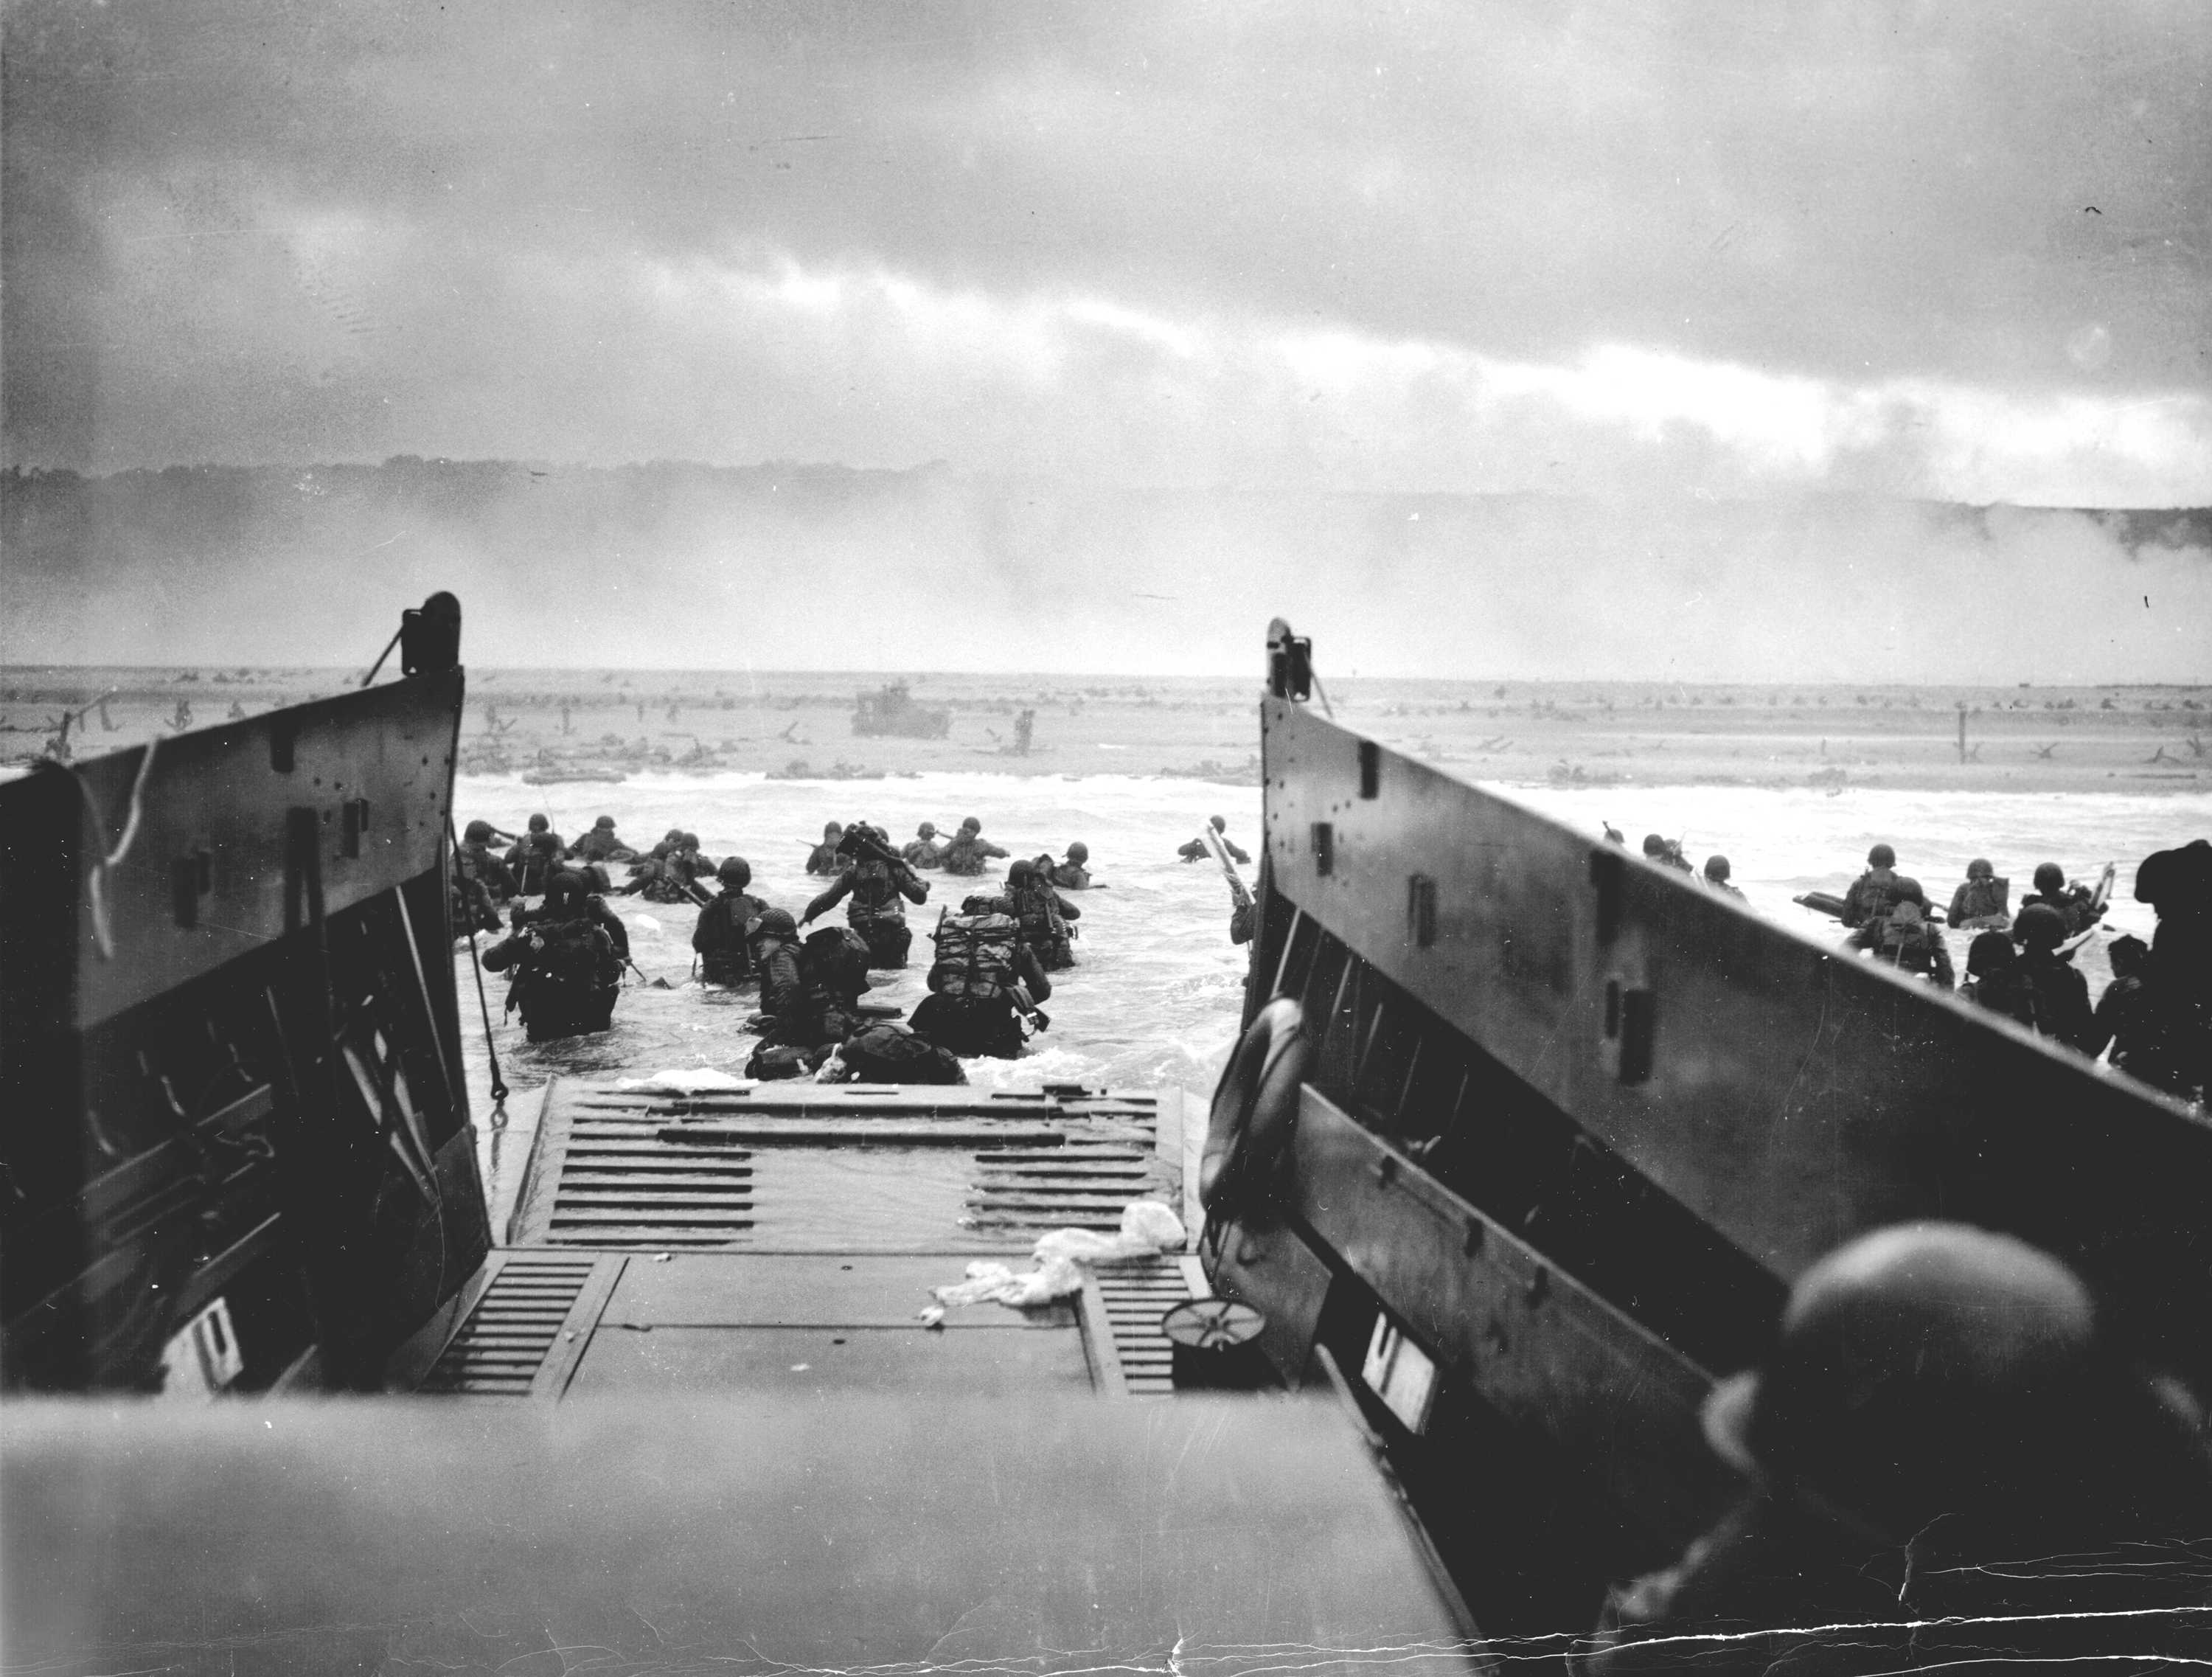 Taken from within the landing craft. The men of the Big Red One are water waist and a never-ending misty beach stretches in front of them